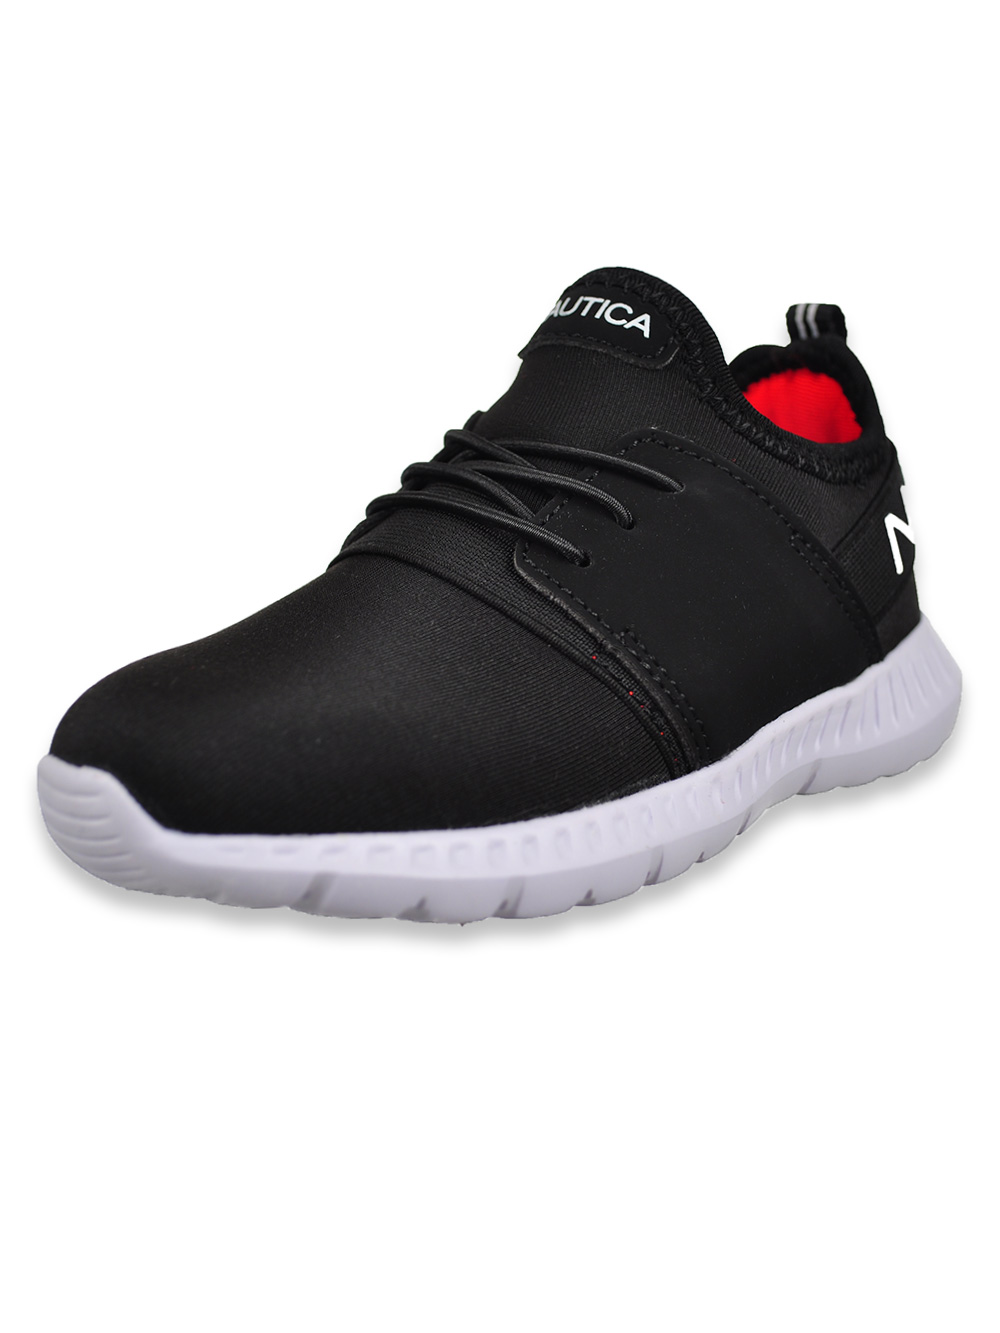 Boys' Neo Structural Running Sneakers